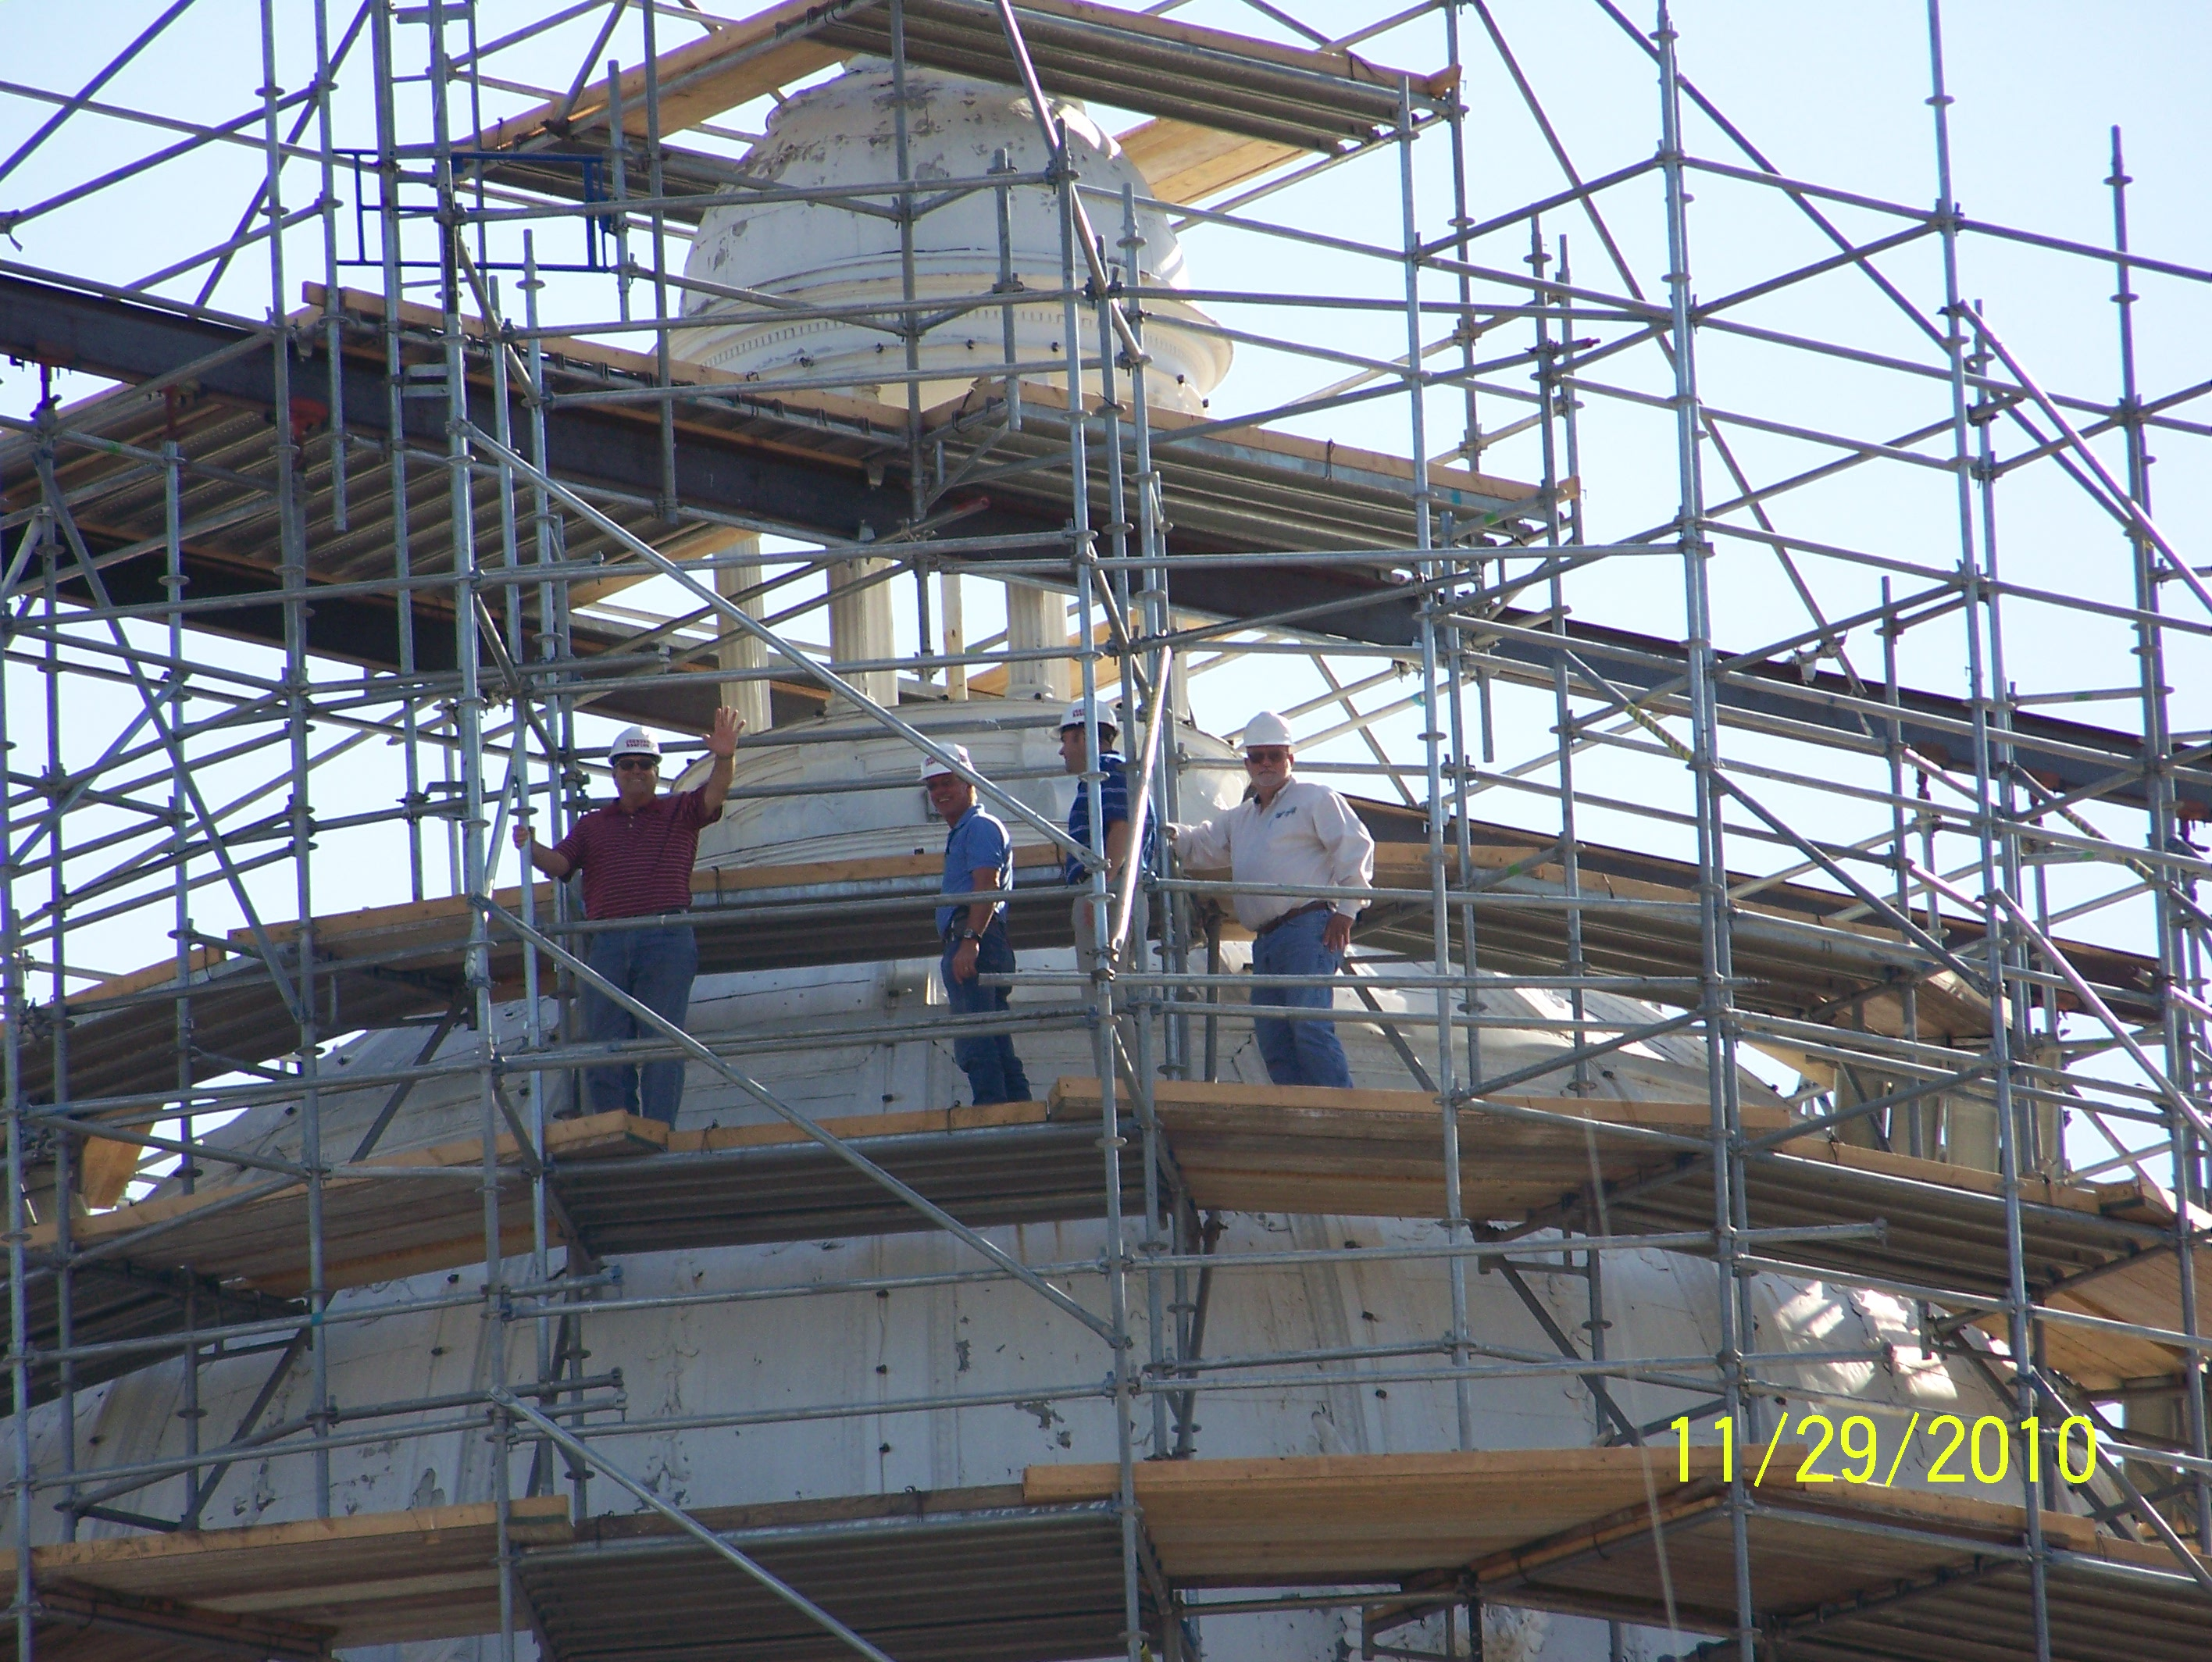 Workers on the Courhouse roof making repairs